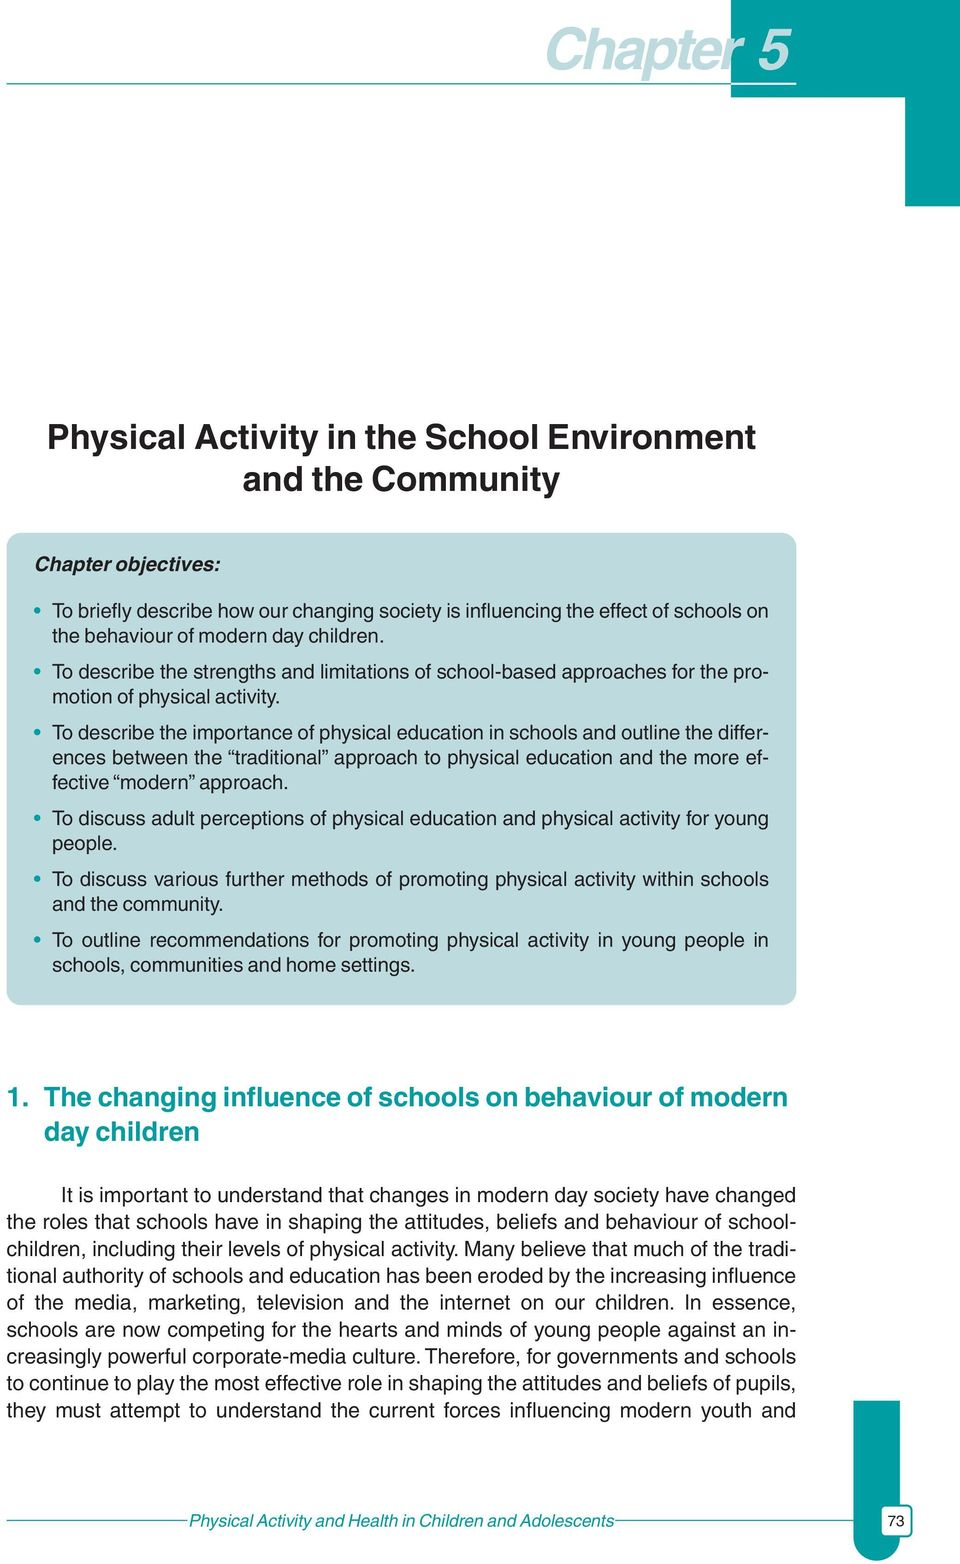 To describe the importance of physical education in schools and outline the differences between the traditional approach to physical education and the more effective modern approach.